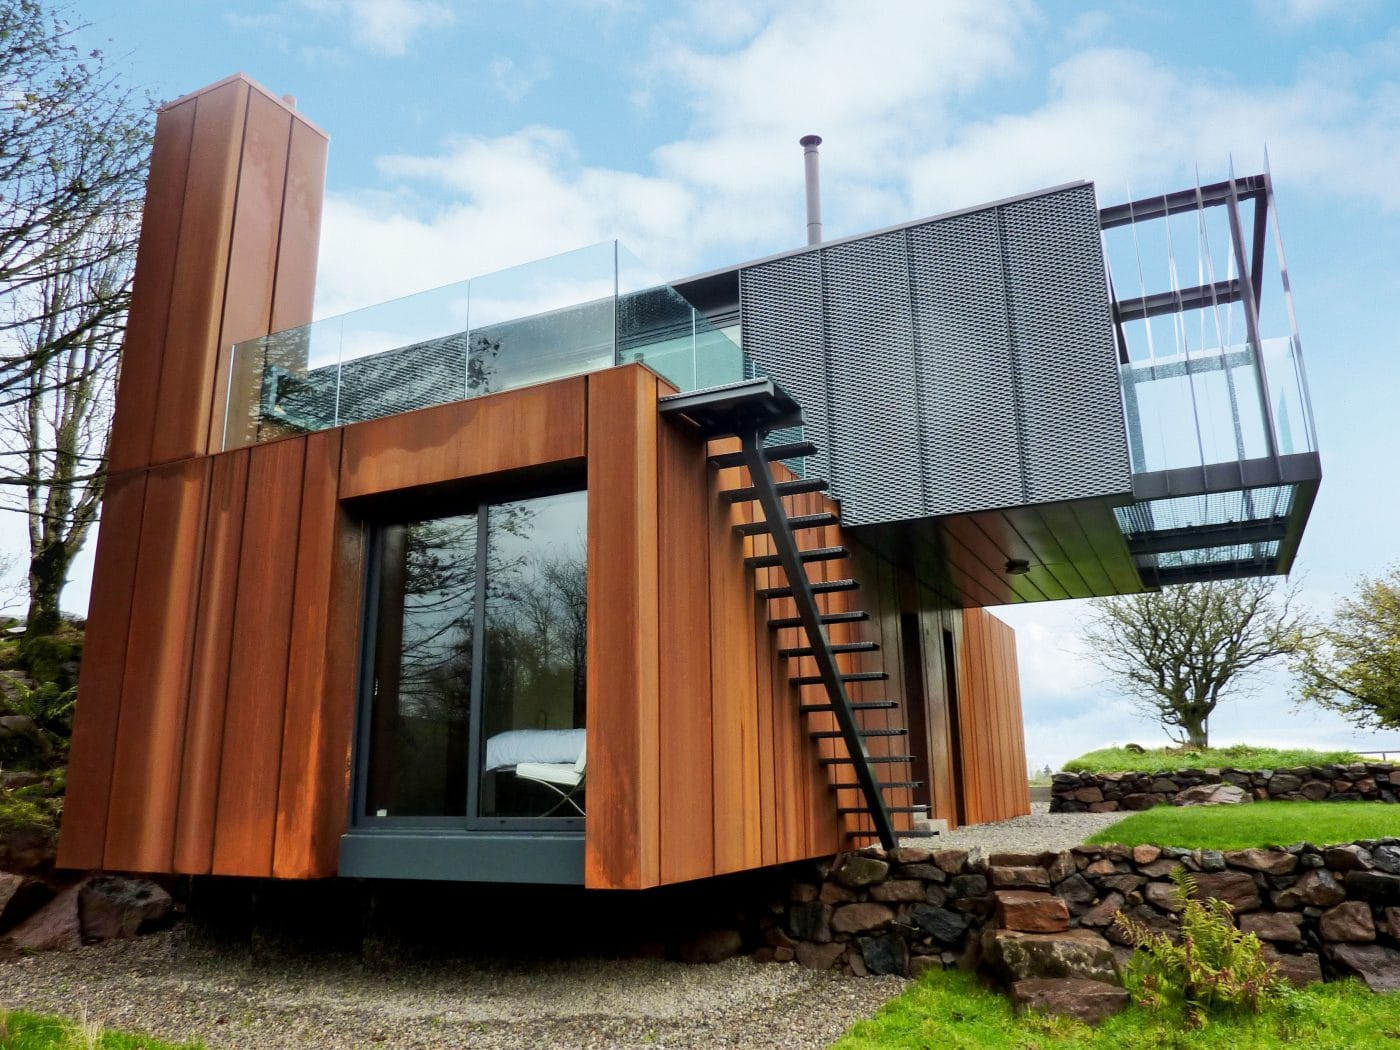 Grand designs shipping container home by patrick bradley Home builders designs